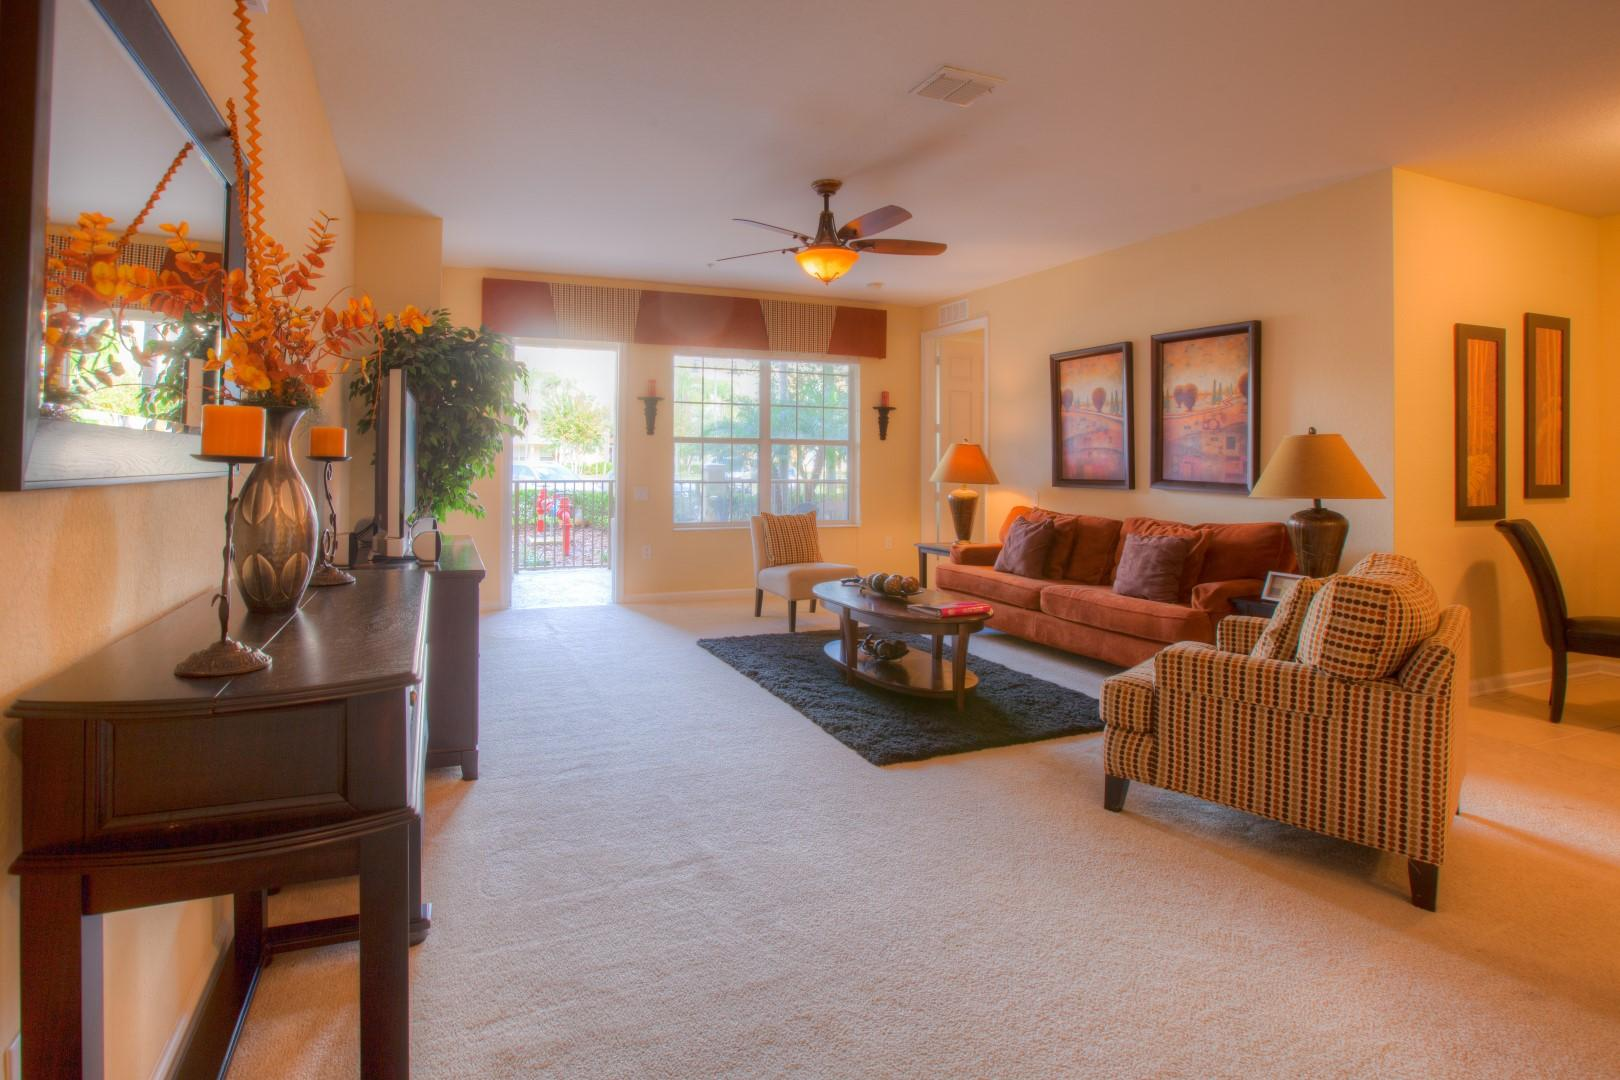 Property Image 2 - Upscale, Luxe Condo with Patio & Resort Access; Near Theme Parks